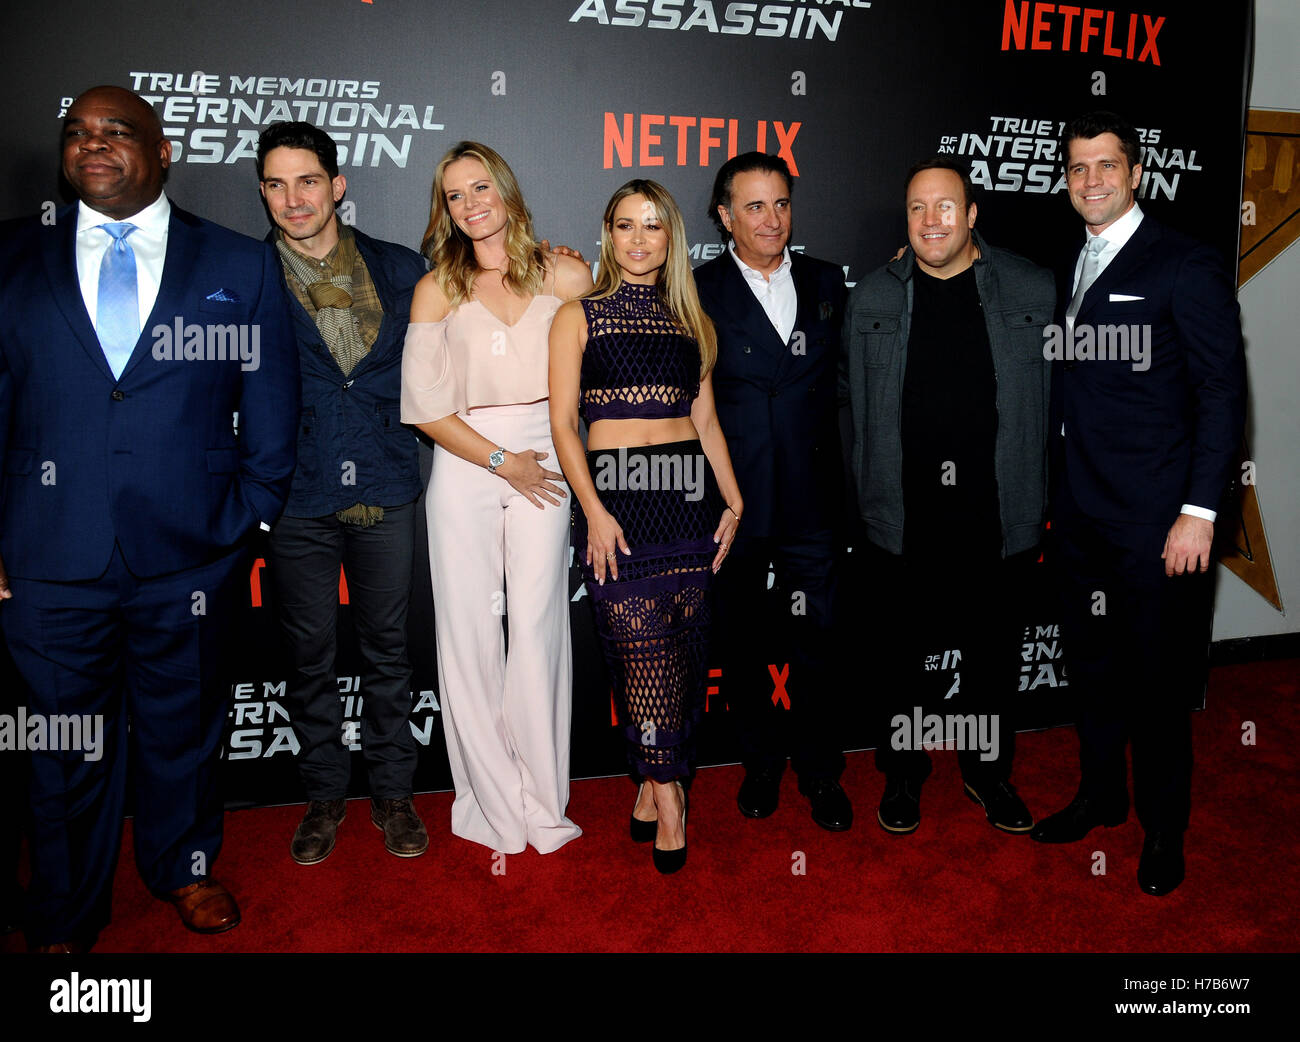 New York, NY, USA. 06Th Nov, 2016. Leonard Earl Howze, Maurice Compte, Lauren Shaw, Zulay Henao, Andy Garcia, Kevin Photo Stock